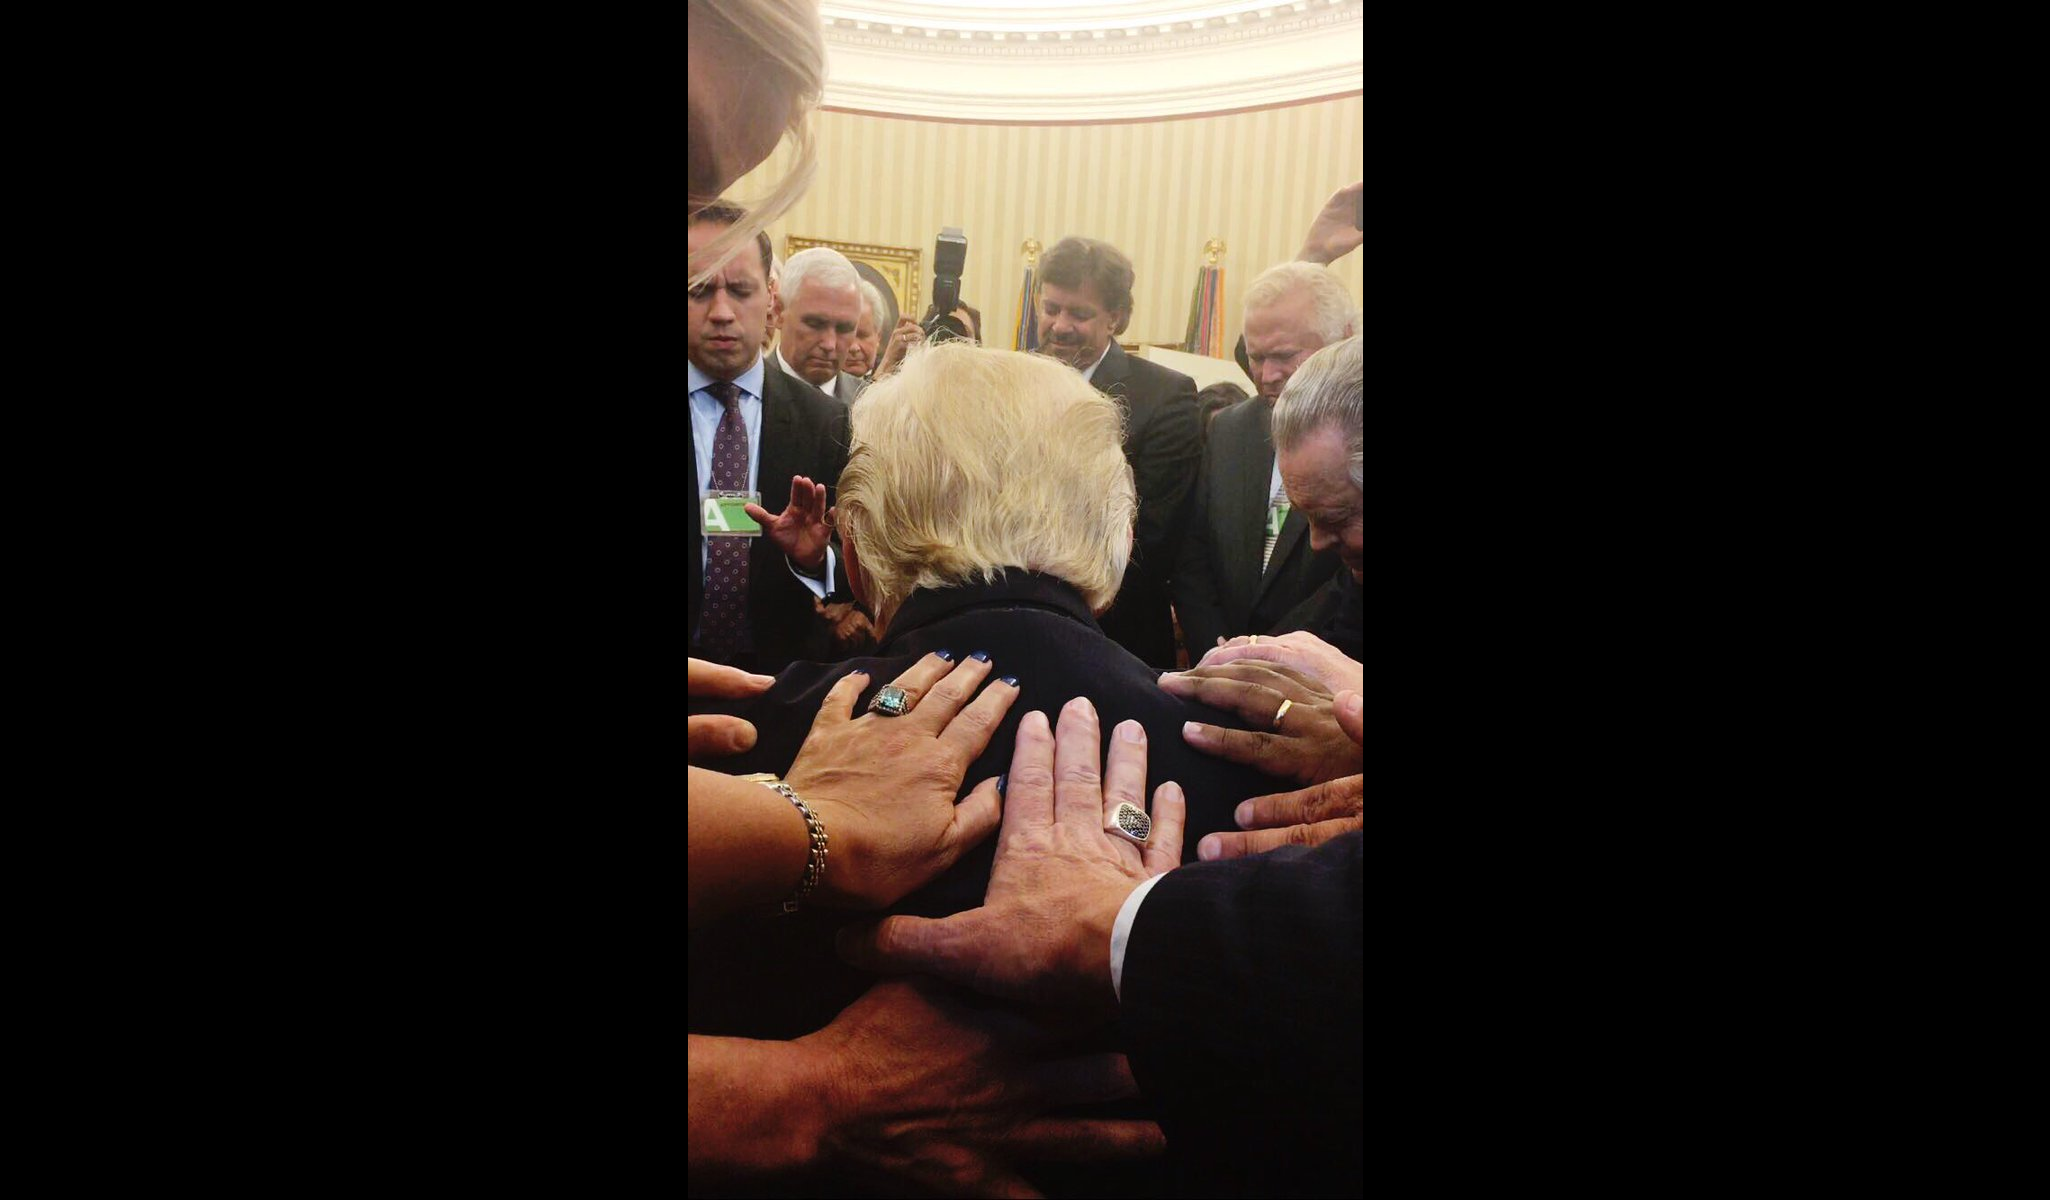 Trump's Oval Office Prayer Points to More Power for Preachers